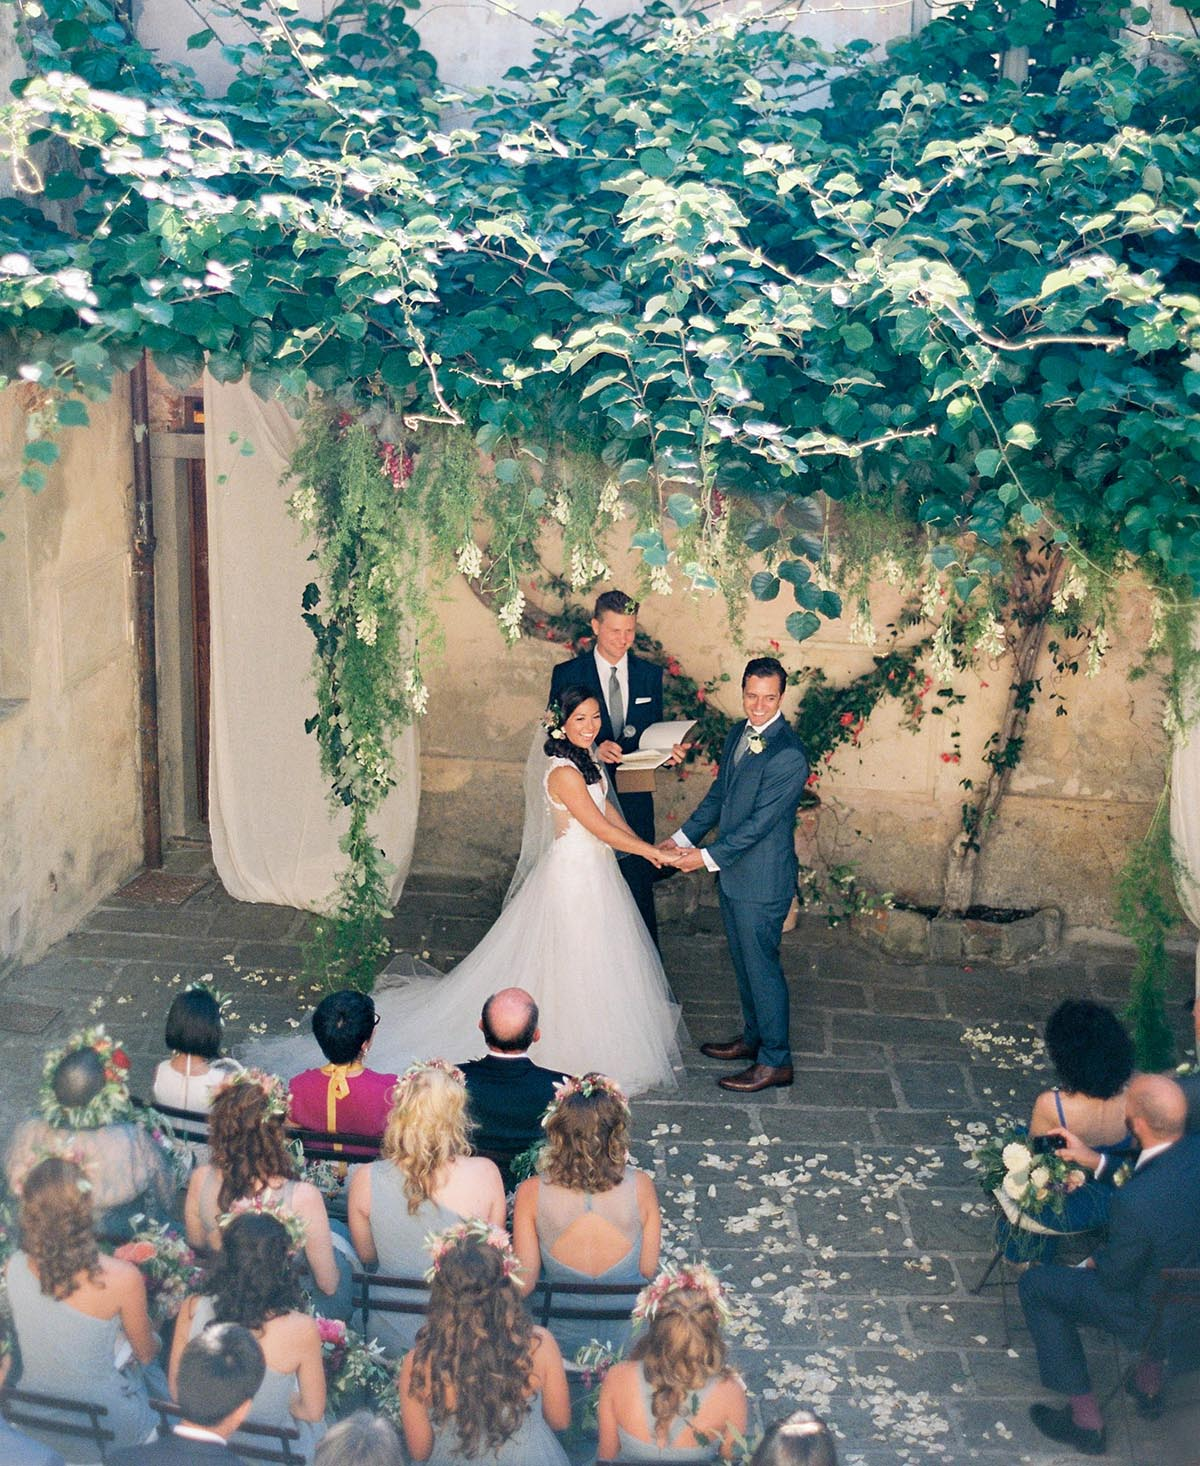 hanging flowers and vines as ceremony altar area in a rustic Tuscan square